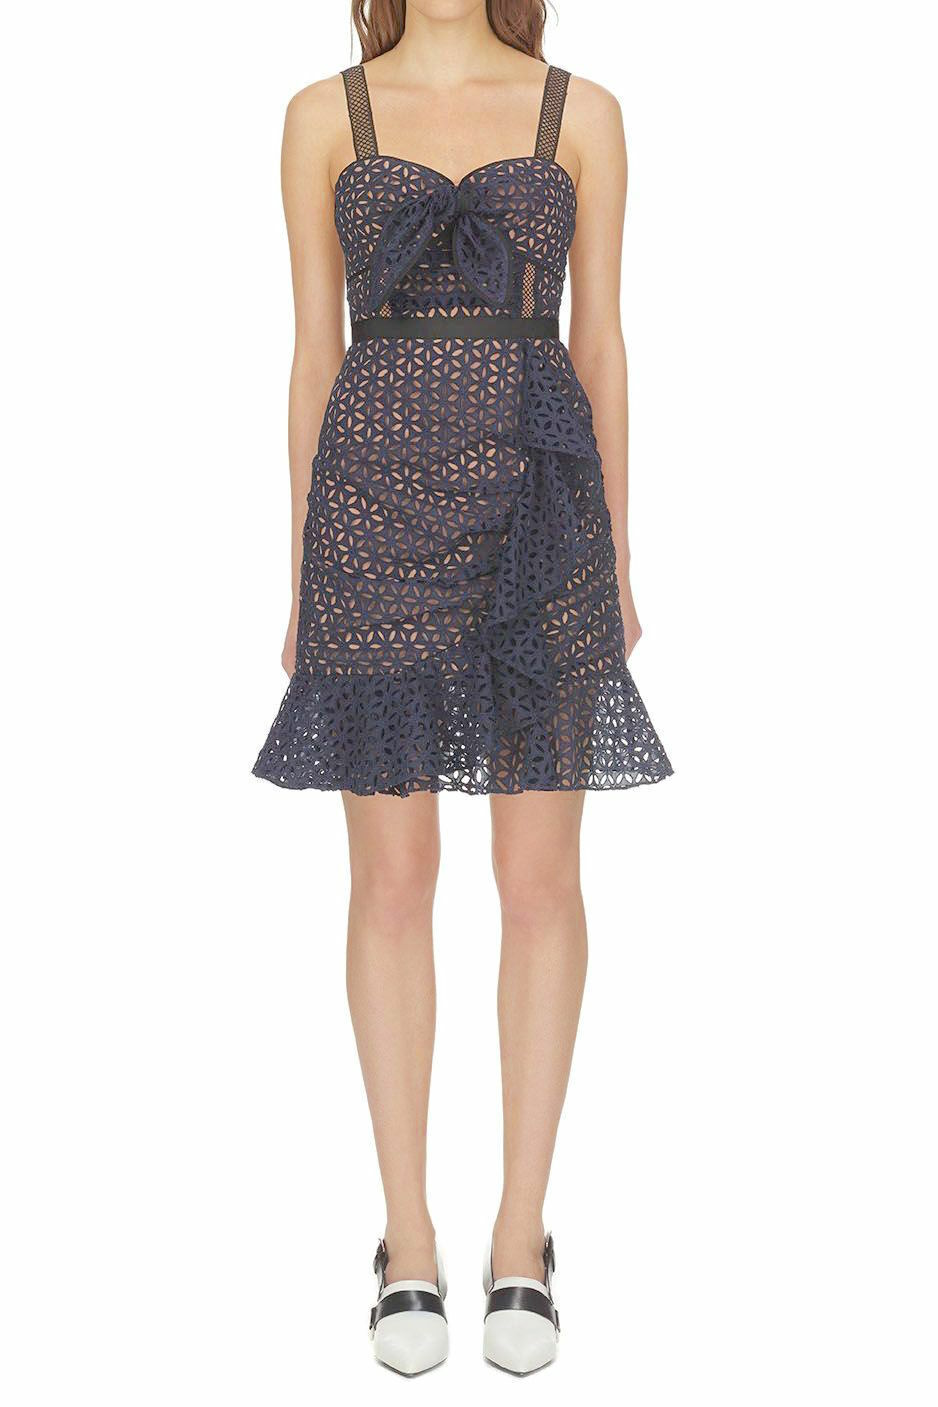 SELF PORTRAIT Navy bluee Nude Floral Eyelet Lace Broderie Anglaise Flounce 2 US 6